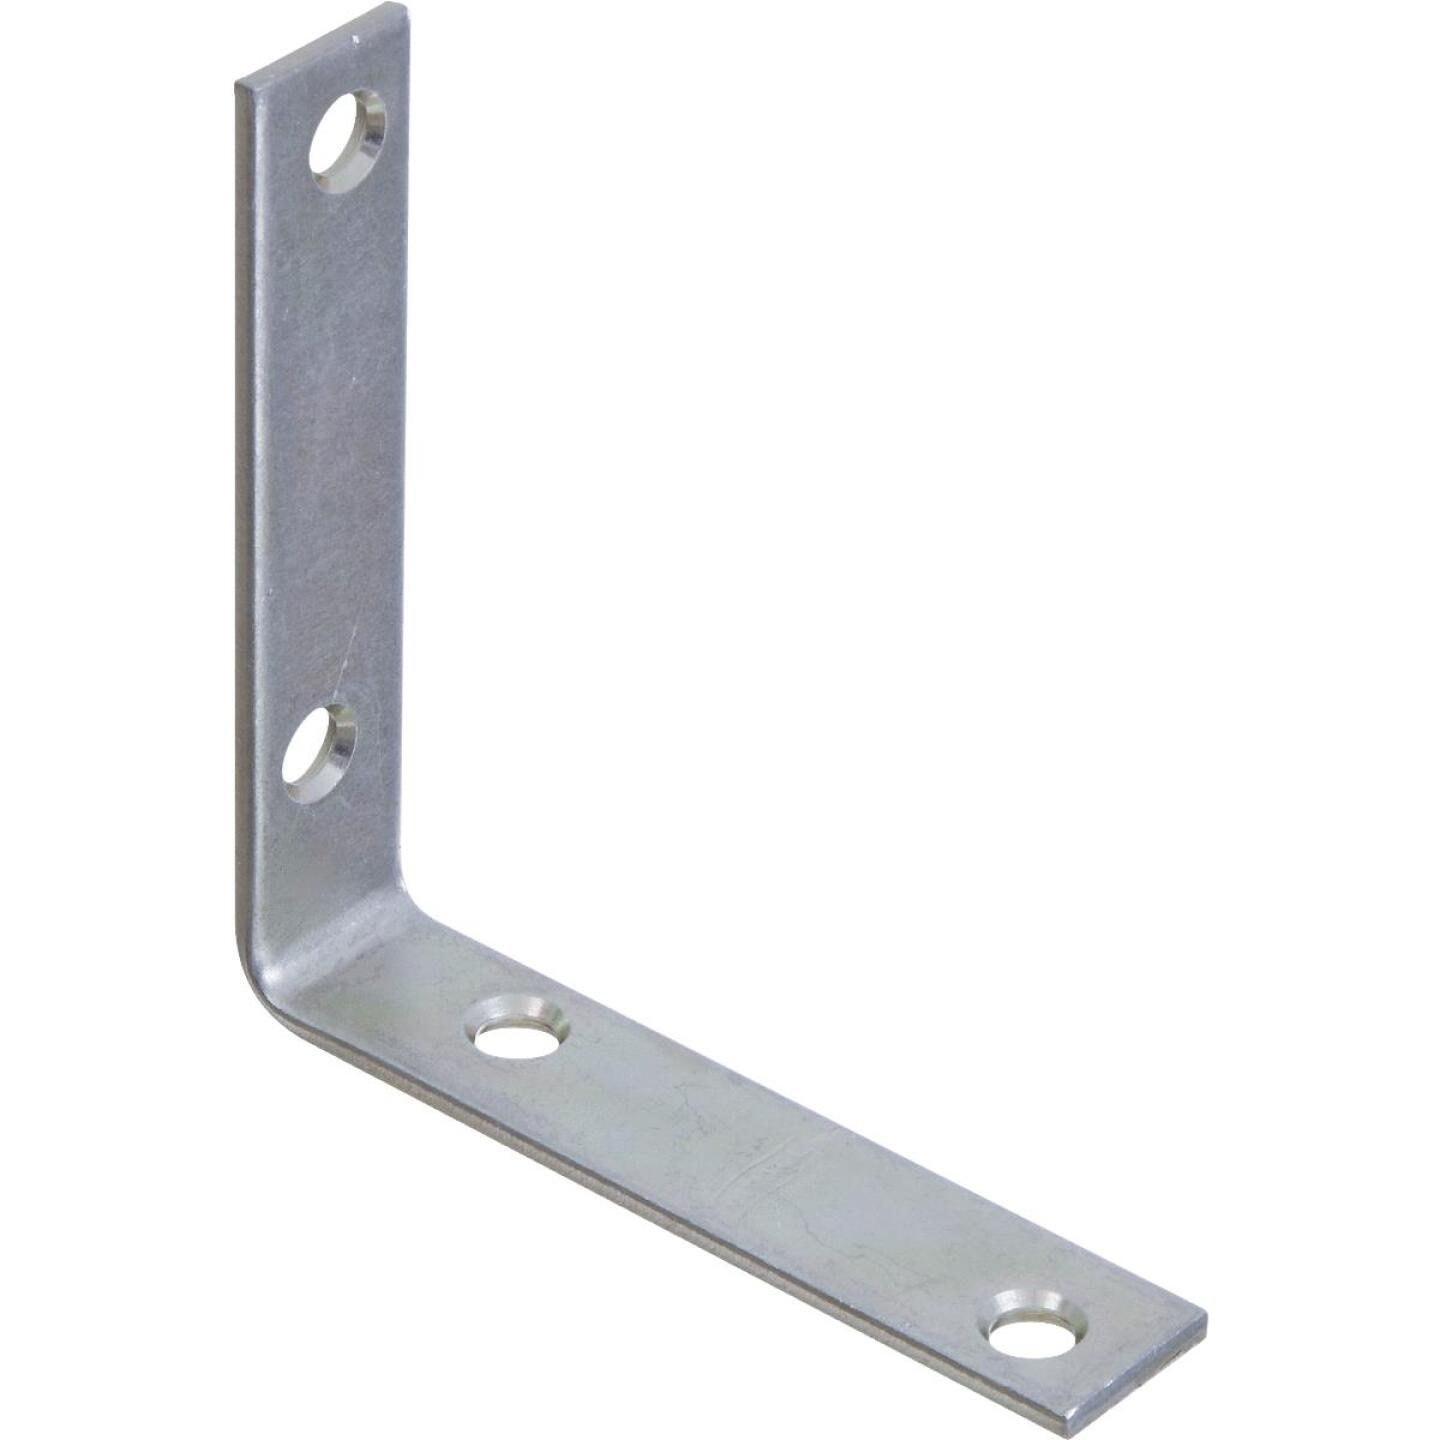 National Catalog 115 3-1/2 In. x 3/4 In. Zinc Corner Brace Image 1